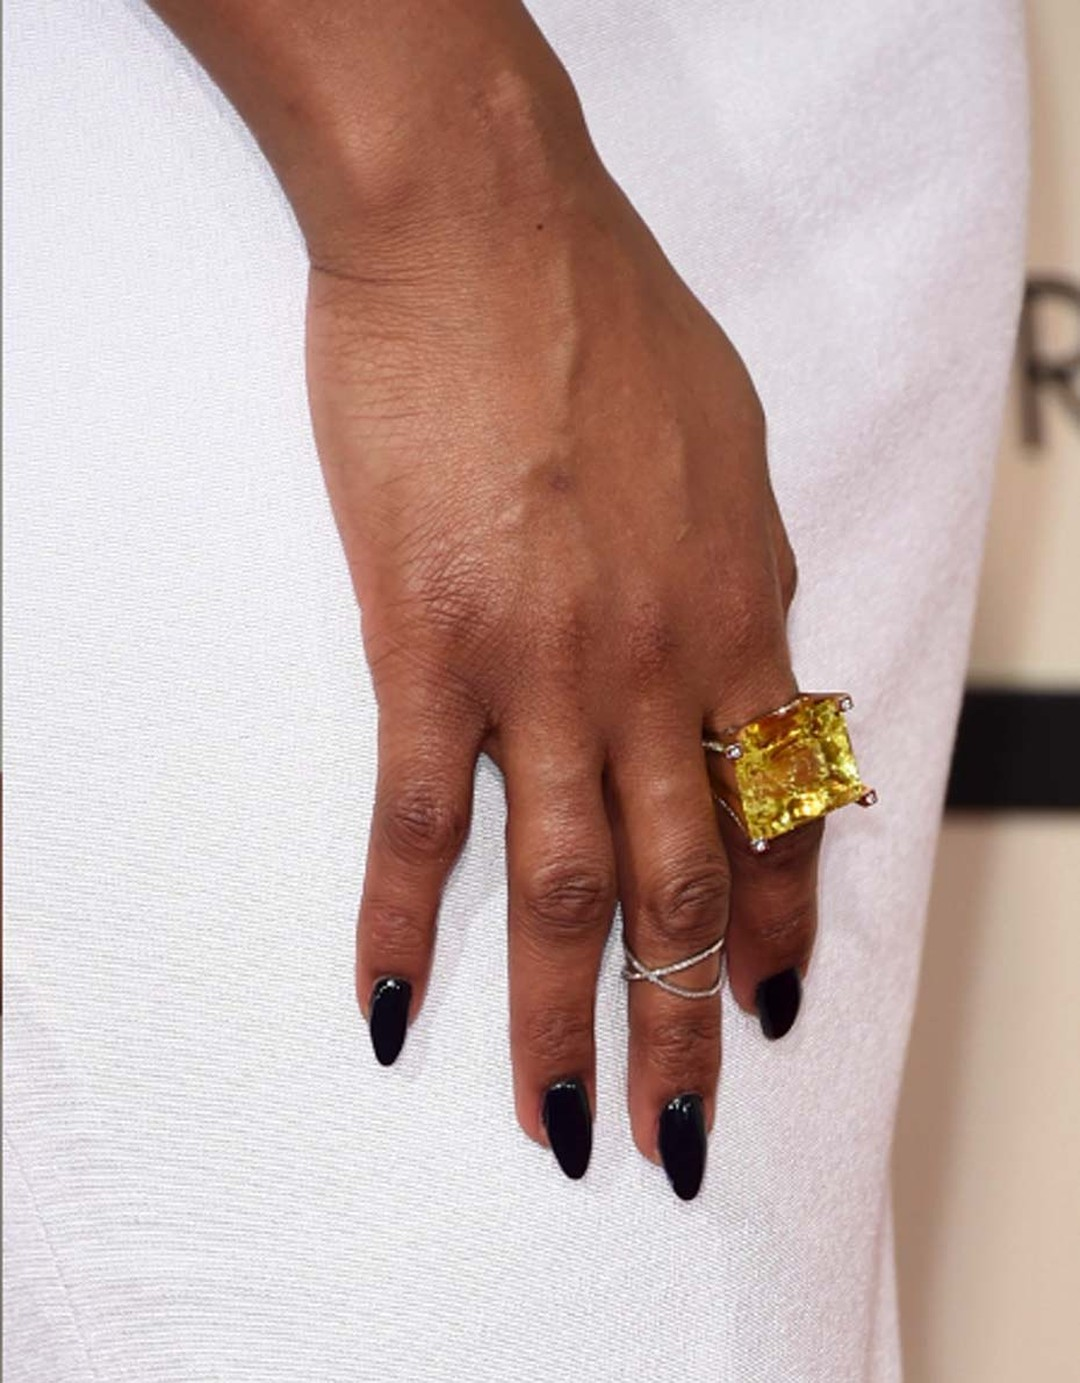 Actress and singer Jennifer Hudson further accessorised her red carpet look with this stunning Jorge Adeler lemon lime quartz ring with diamonds.